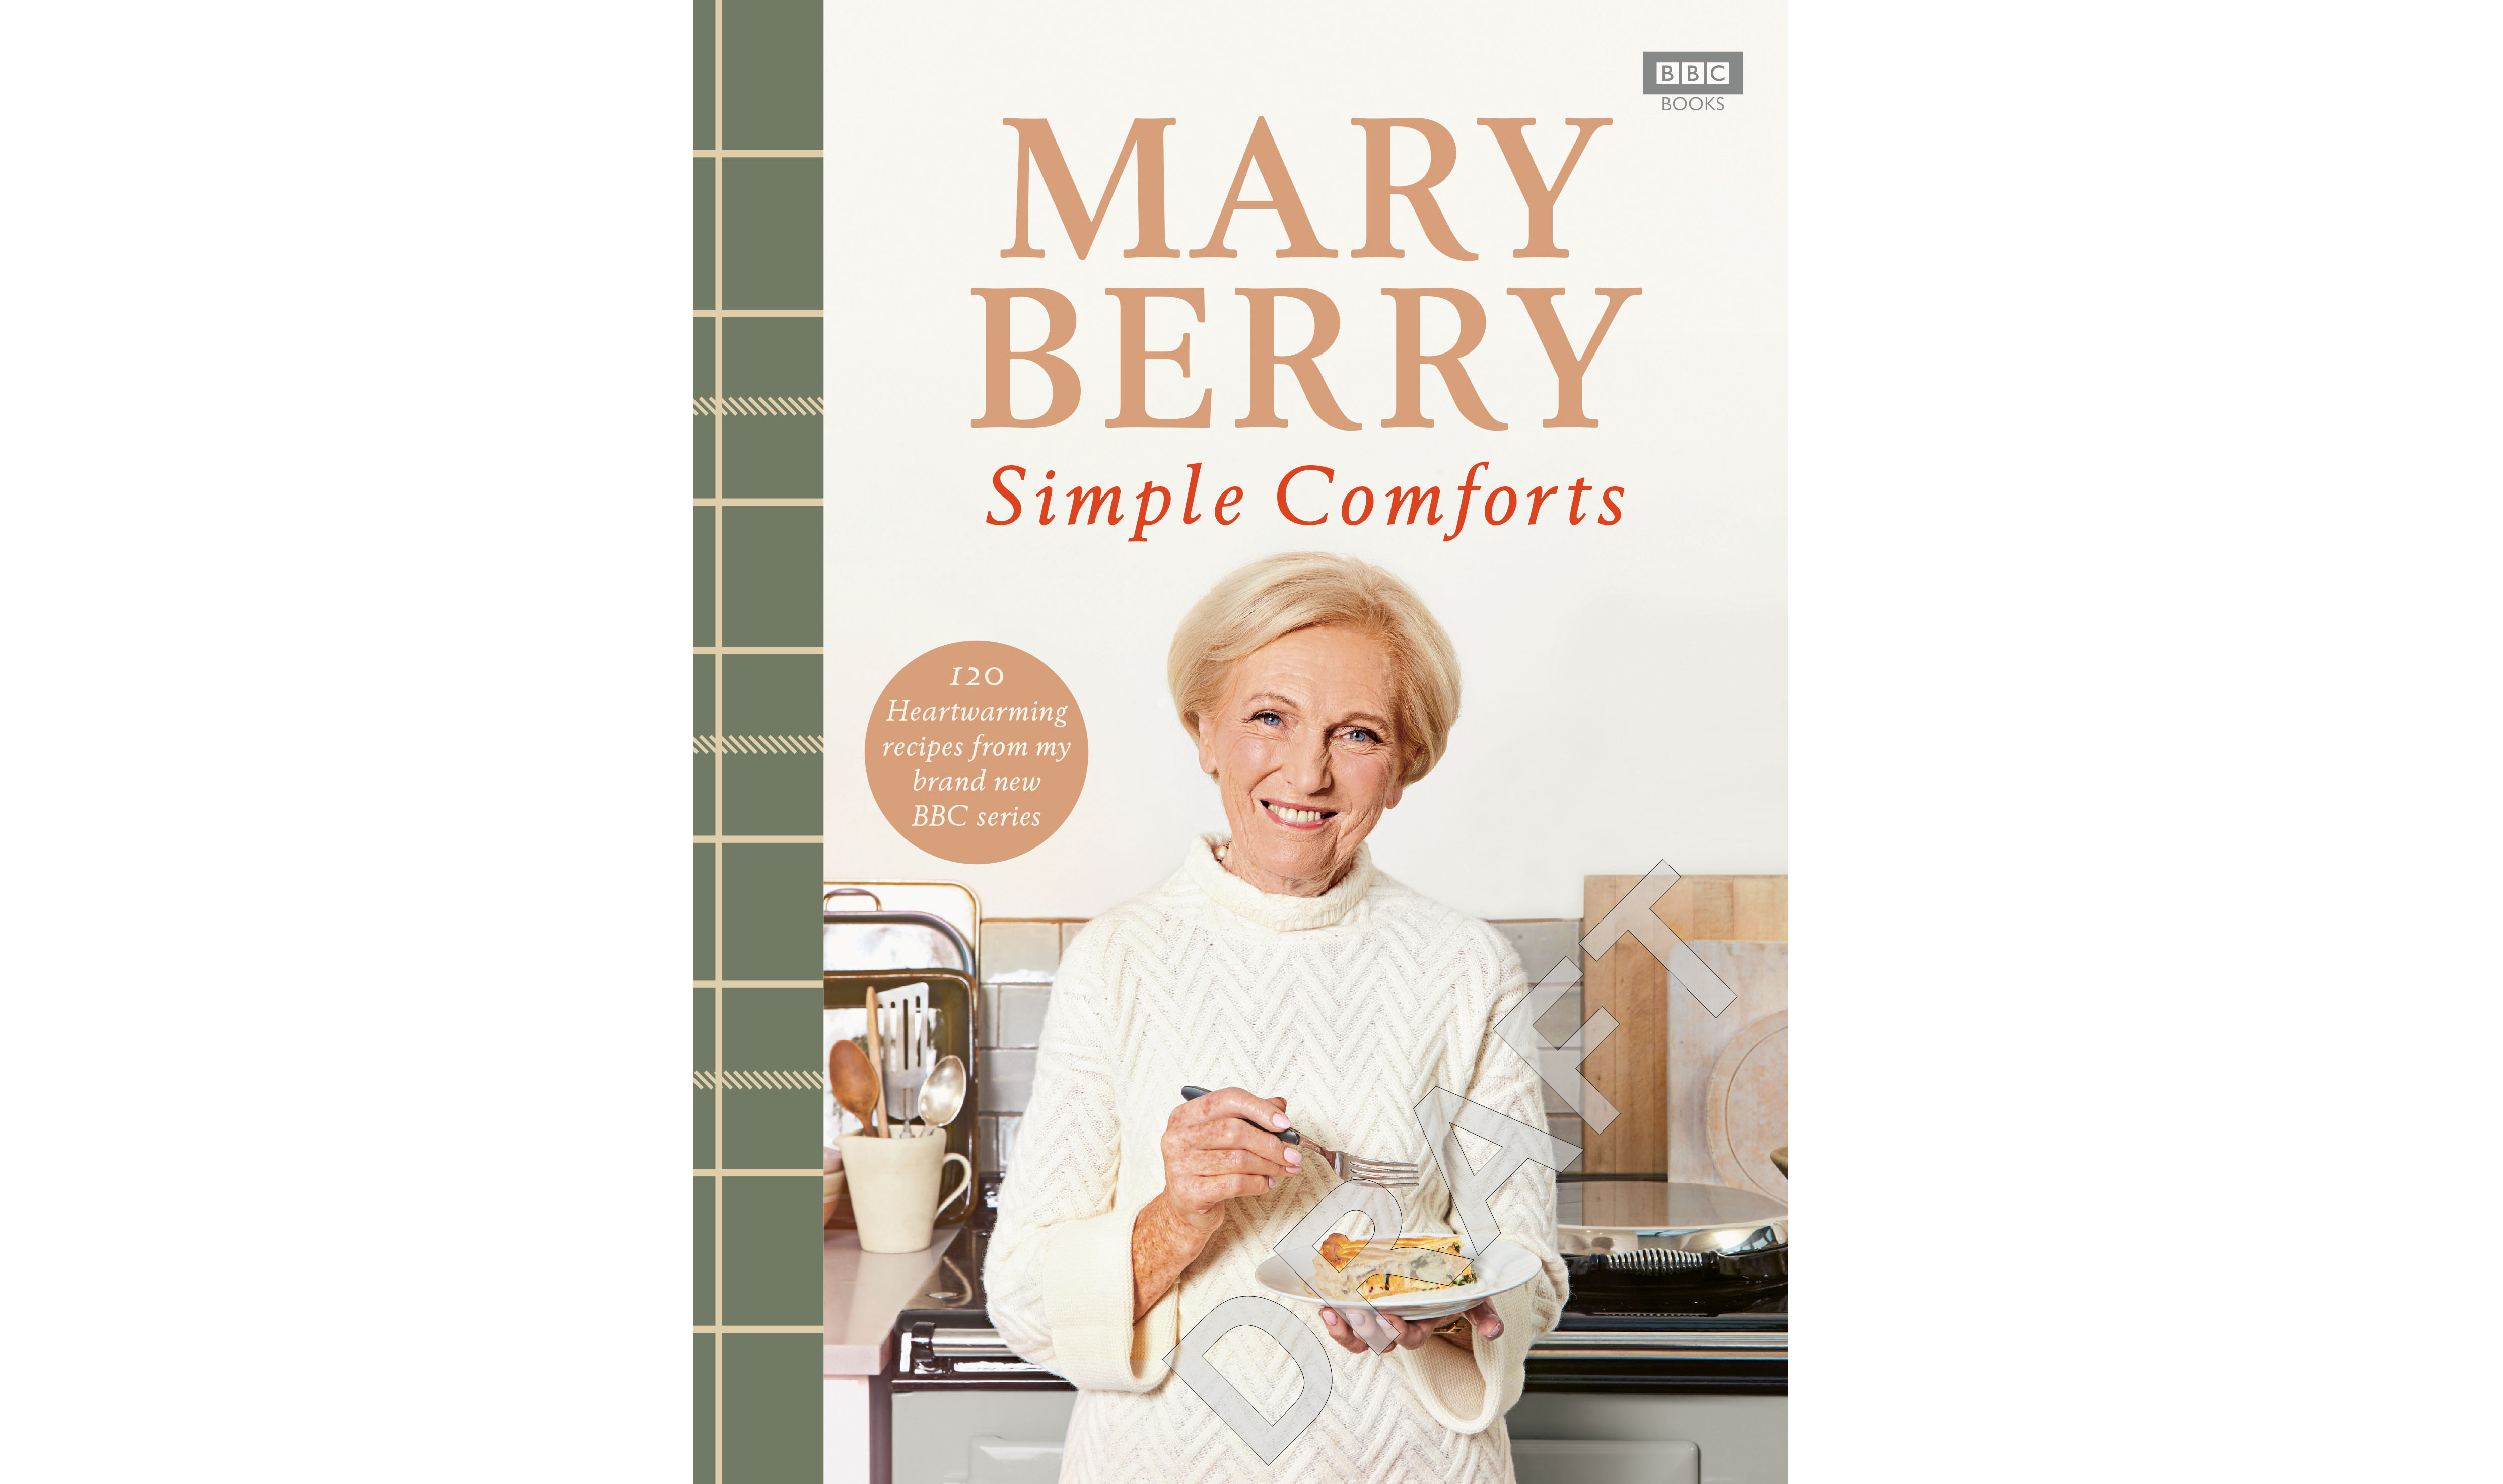 Undated Handout Photo of Simple Comforts by Mary Berry (BBC Books, £26). See PA Feature FOOD Mary Berry. Picture credit should read: Laura Edwards/PA. WARNING: This picture must only be used to accompany PA Feature FOOD Mary Berry